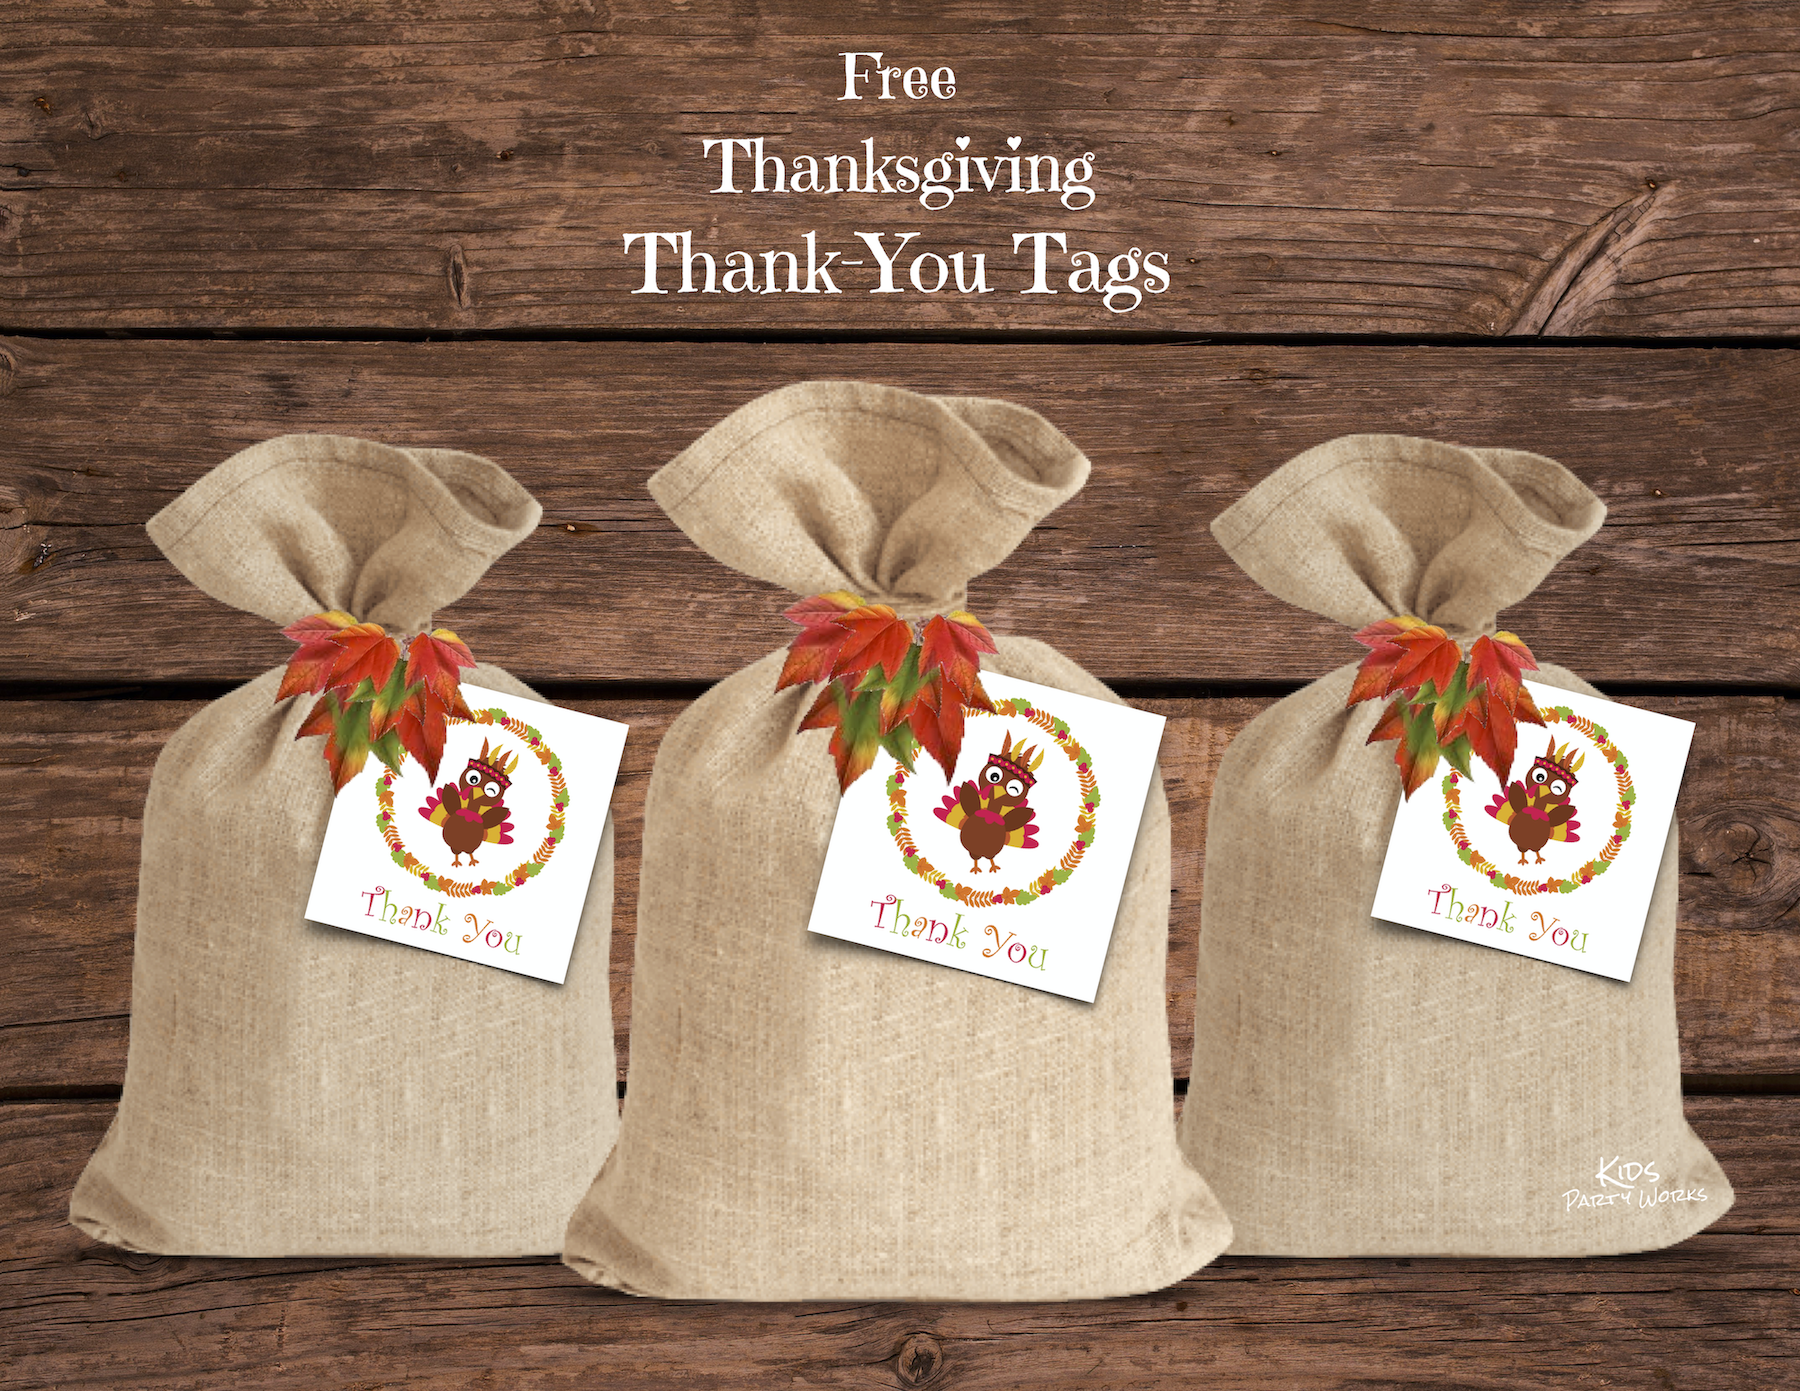 Free Thanksgiving Thank-You Tags at KidsPartyWorks.Com